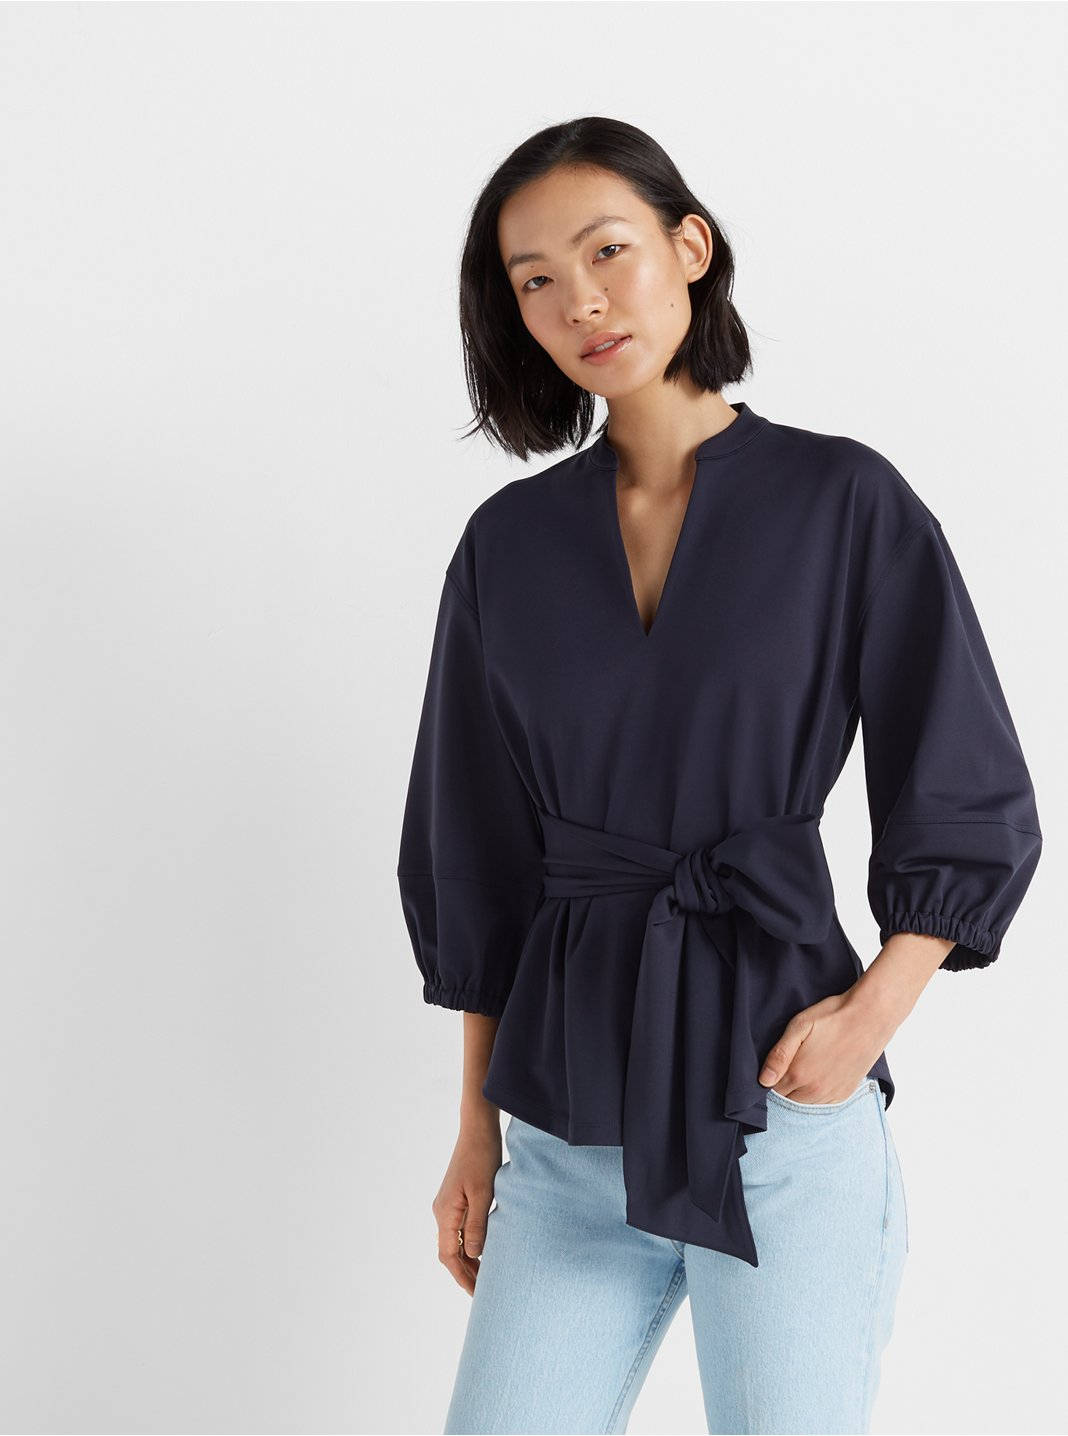 클럽 모나코 튜닉 Club Monaco Tunic Wrap Top,Blueberry